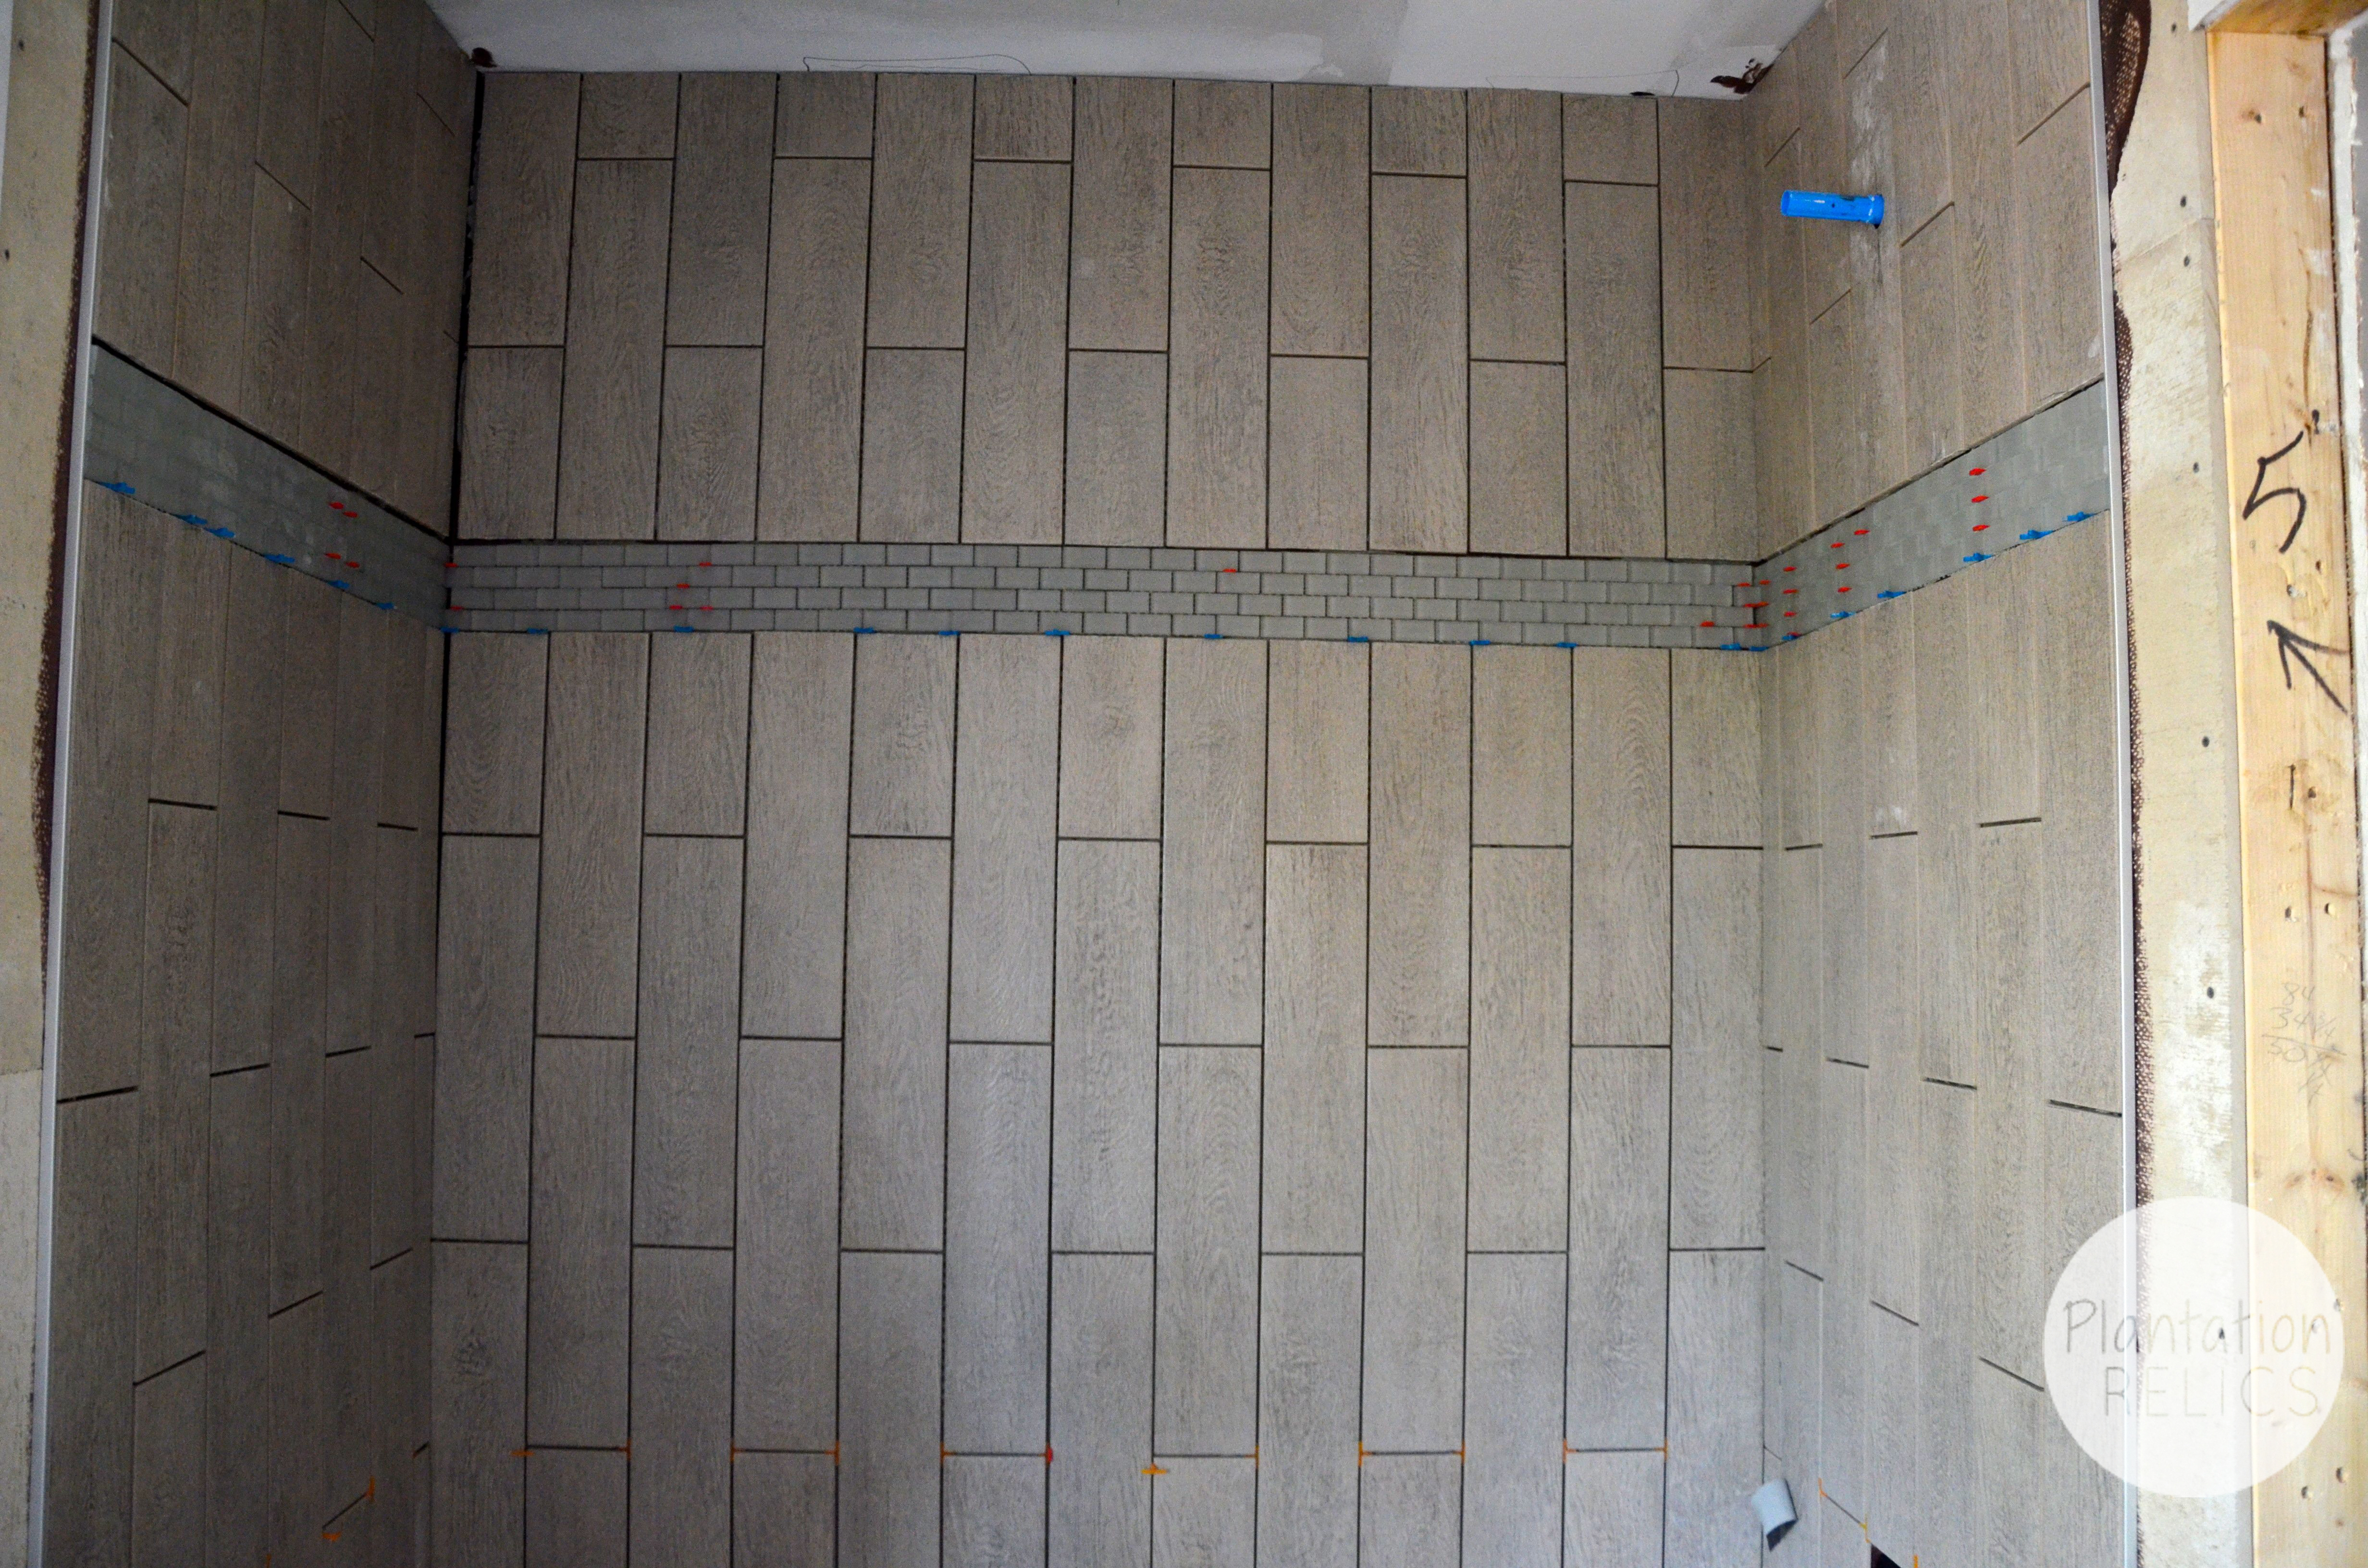 bathroom tile design patterns shared bath tile design flip house tile part 1 16072